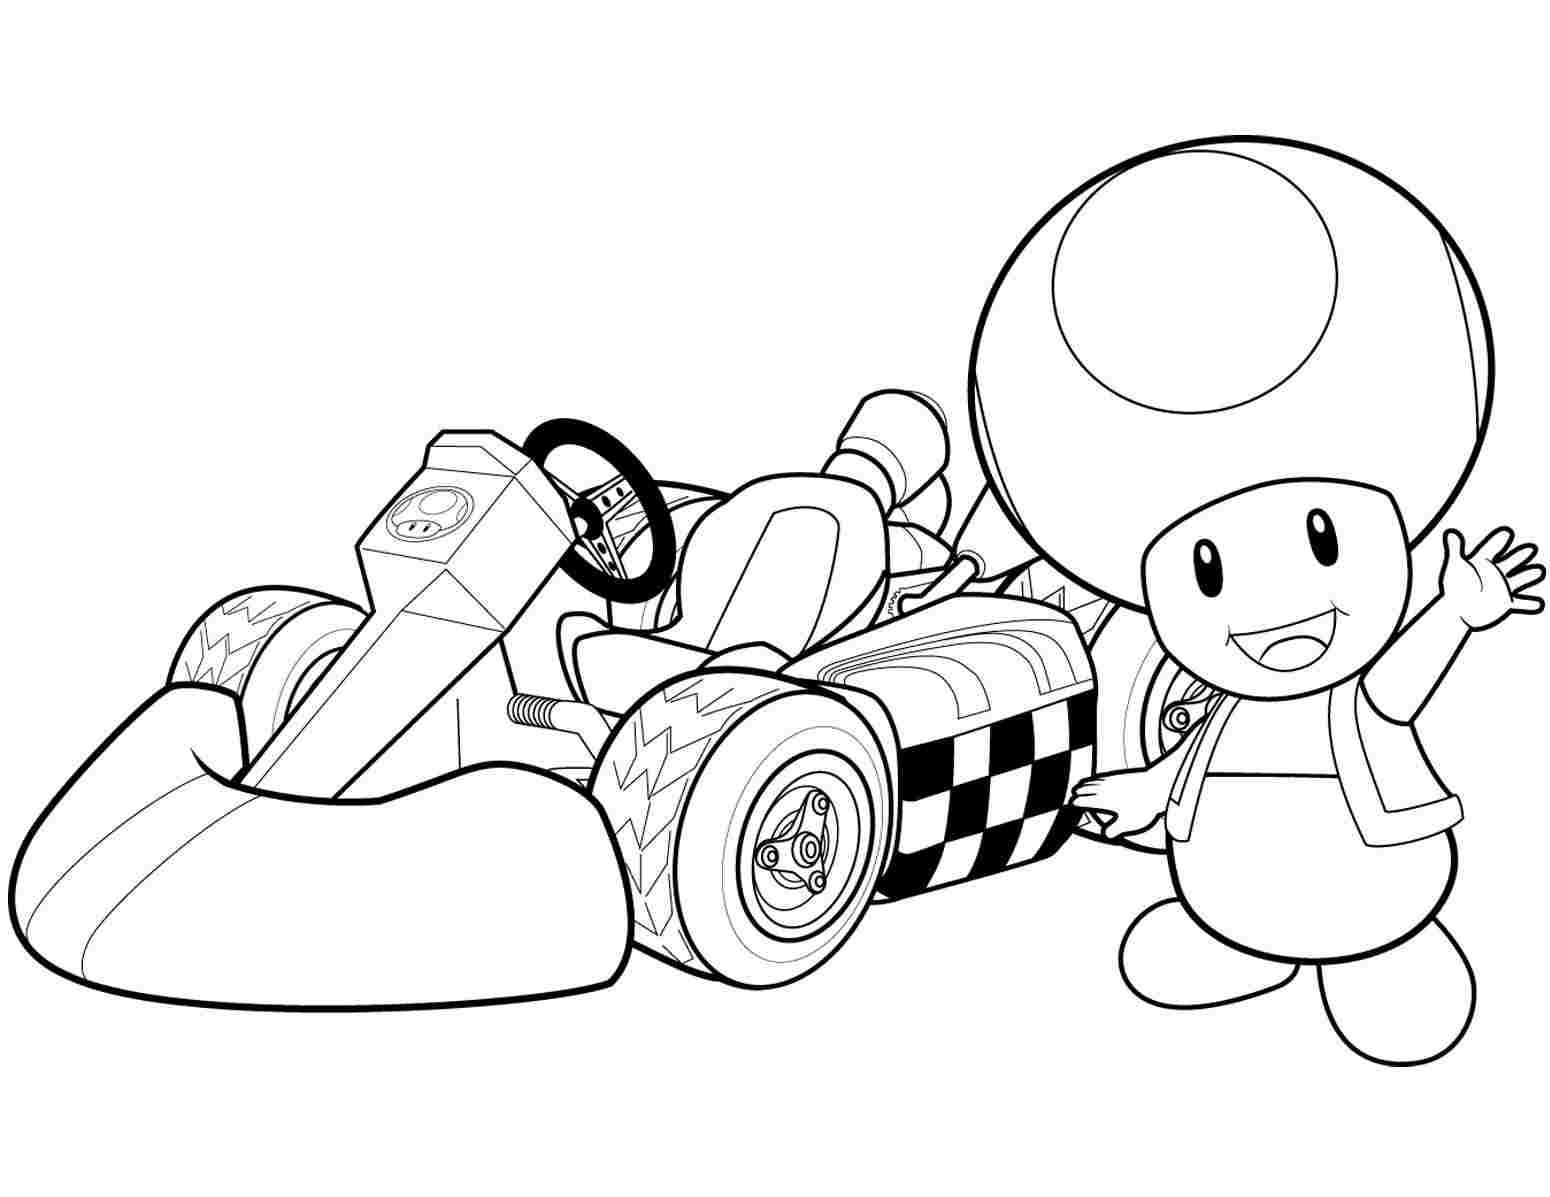 Toad in Mario Kart for Wii Console Coloring Page